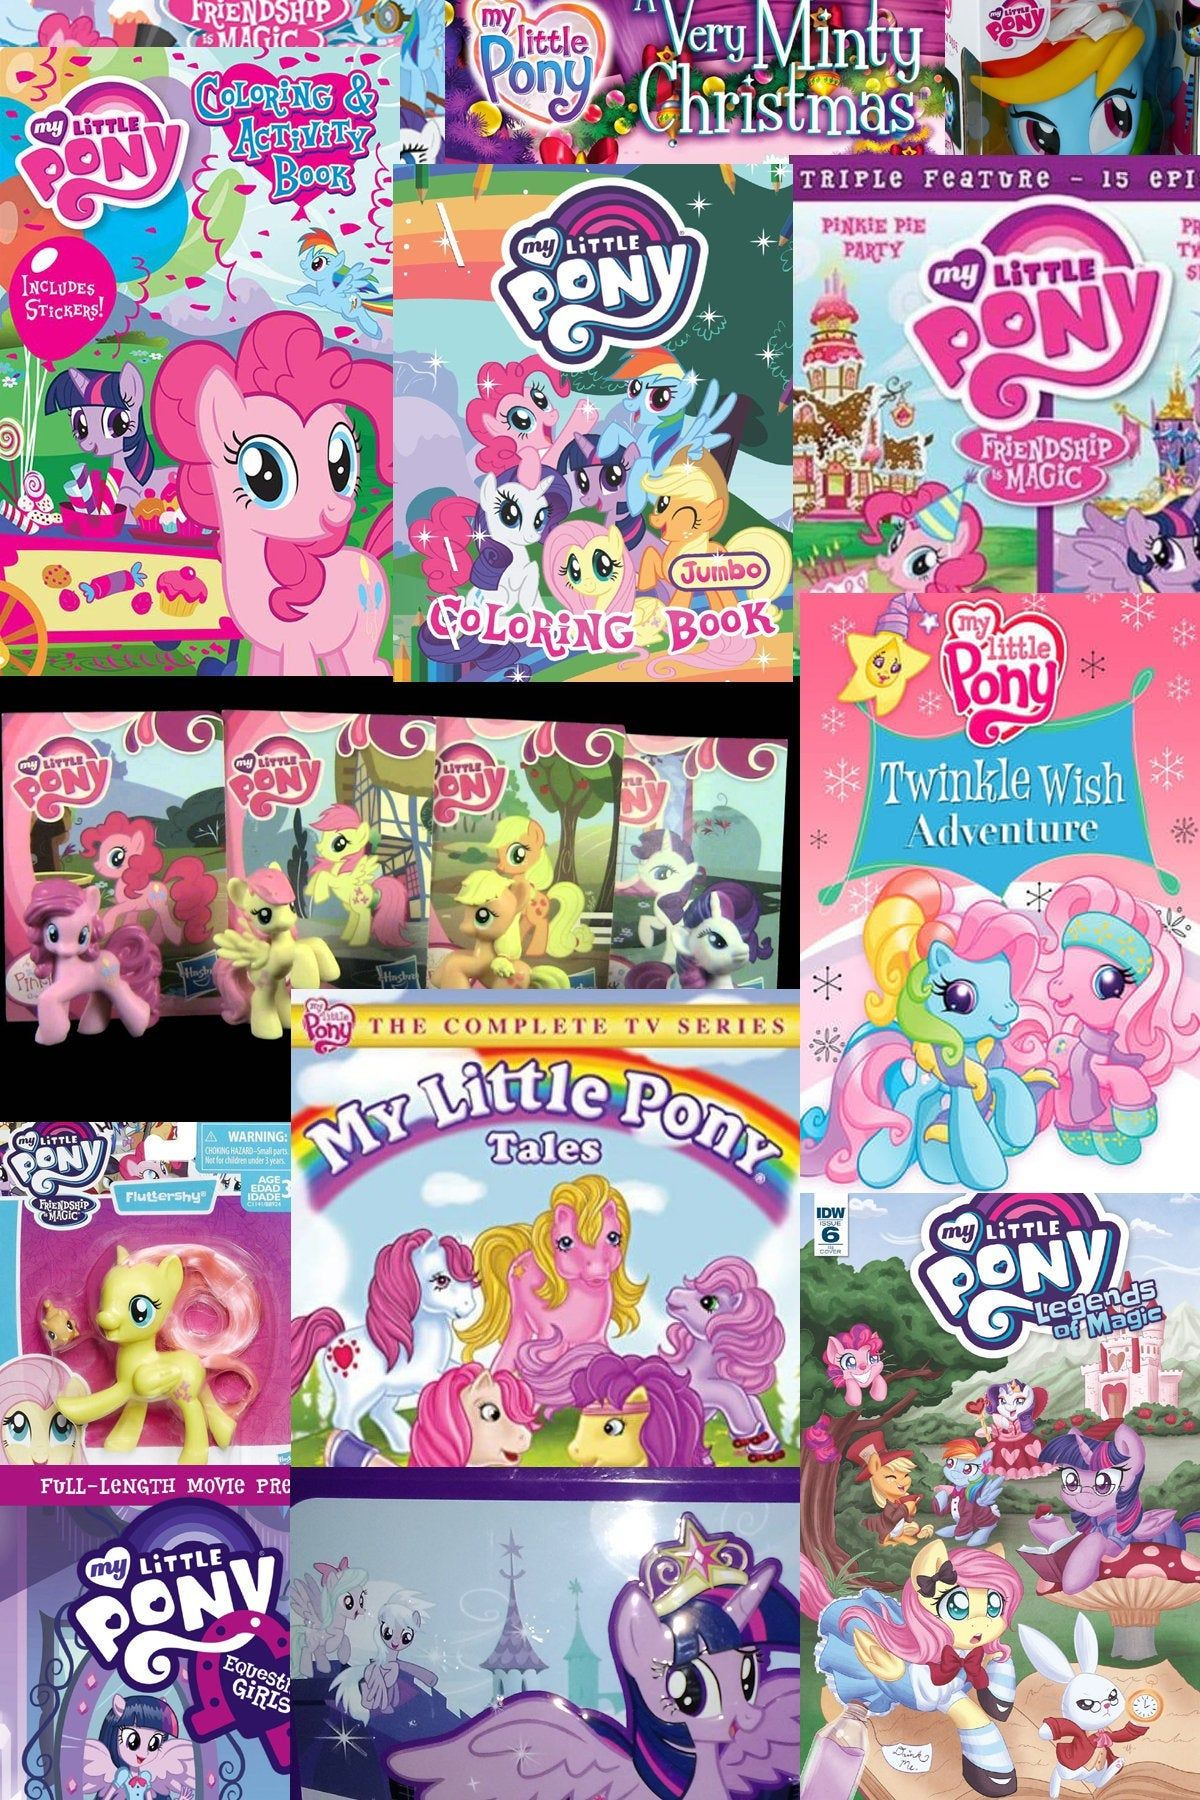 Thanks For The Kind Words Omg Such A Awesome Selection Of Dvds And The Sticker Pack Is My Favorite Pack Ne In 2020 Pony Gift My Little Pony Set My Little Pony